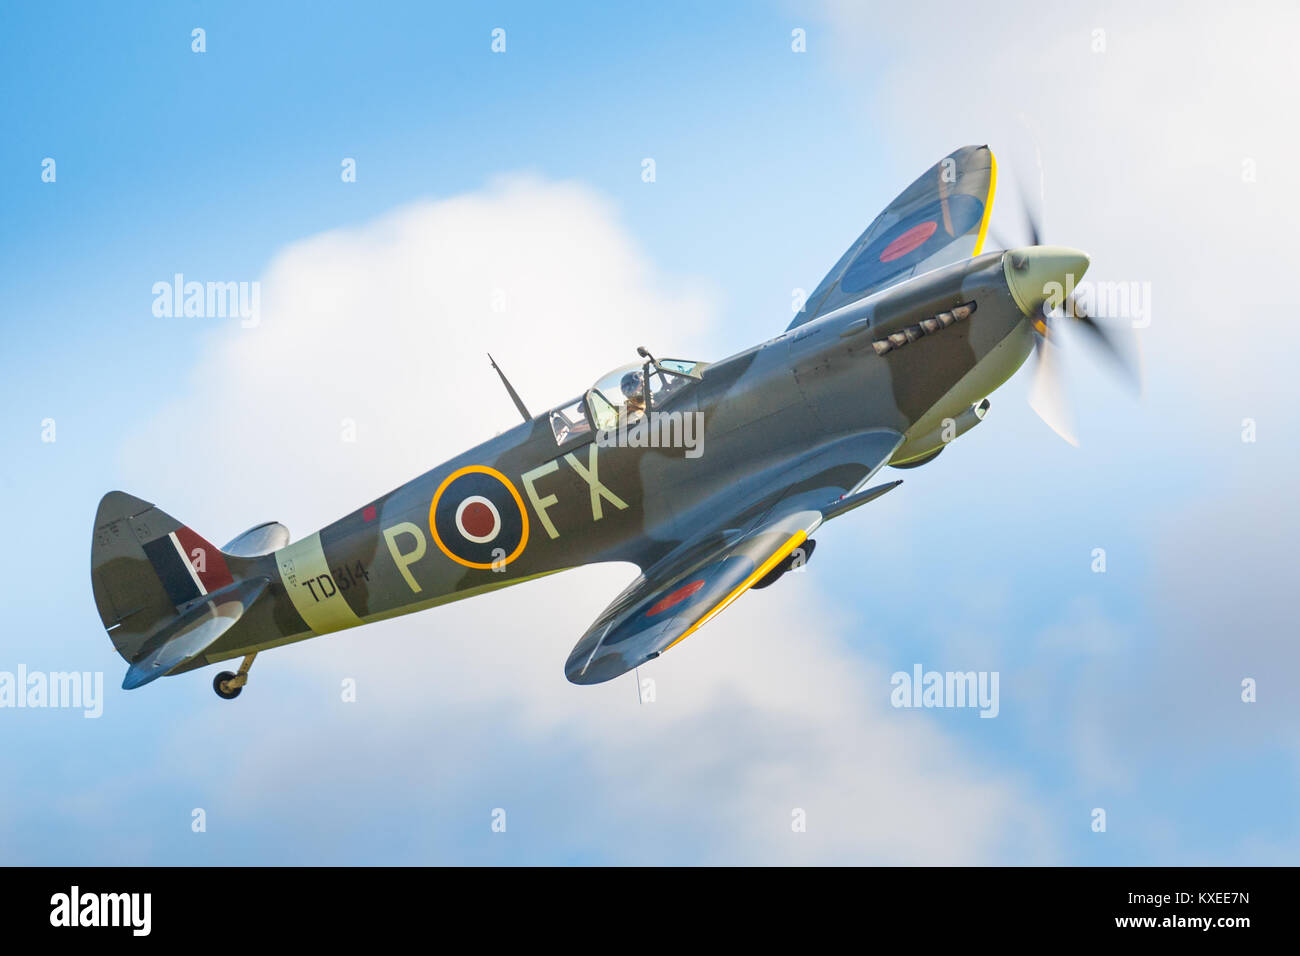 Spitfire HF Mk.IXe. Battle of Britain 75th anniversary at Goodwood (RAF Westhampnett) - Stock Image